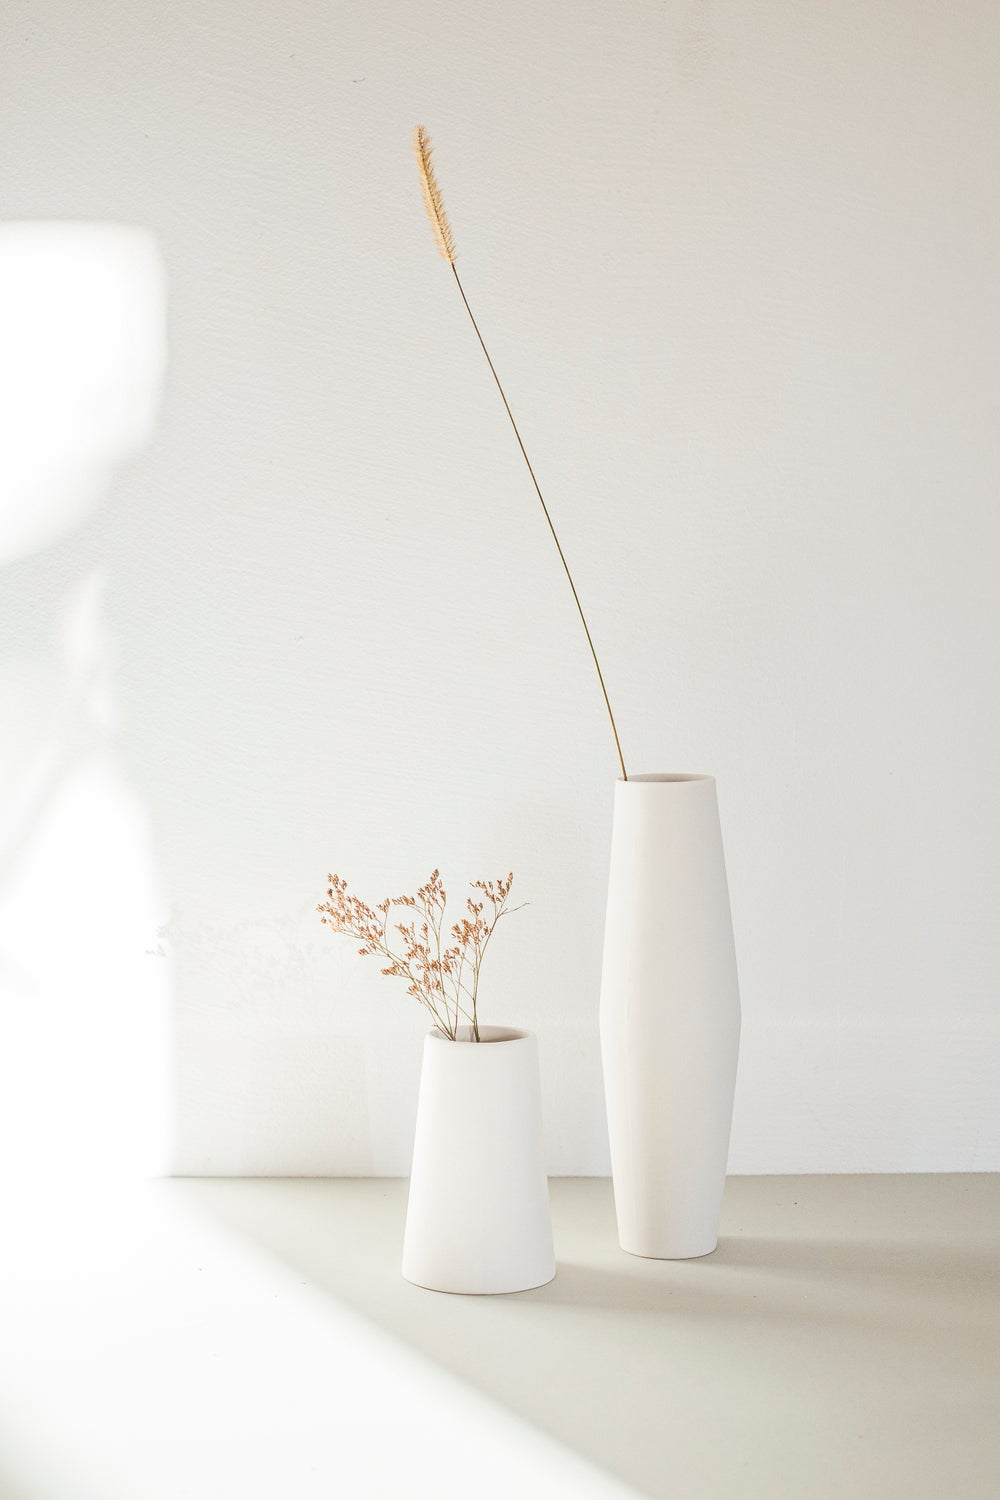 Image of Vase gross und klein / Vase large and small